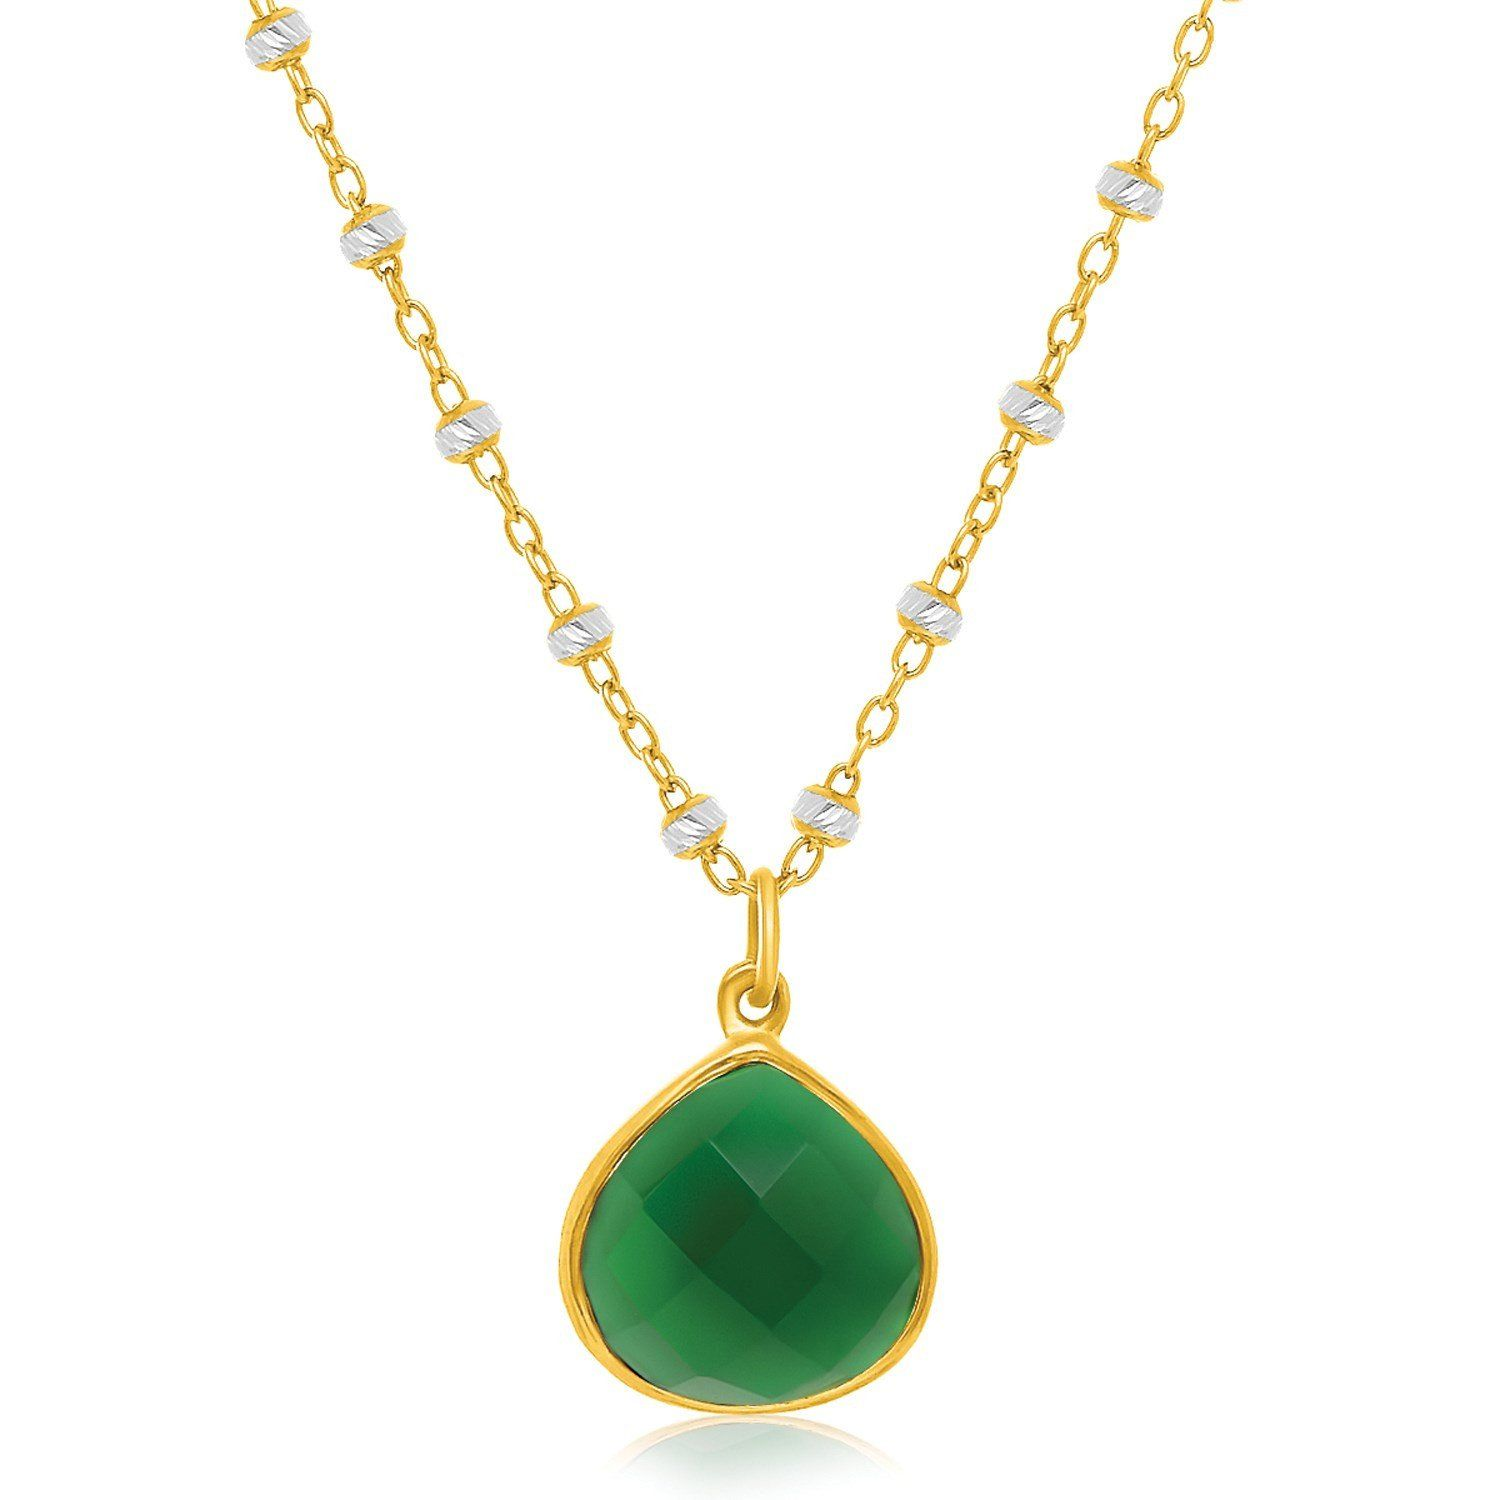 Sterling Silver Yellow Gold Plated Teardrop Pendant with a Green Onyx Accent